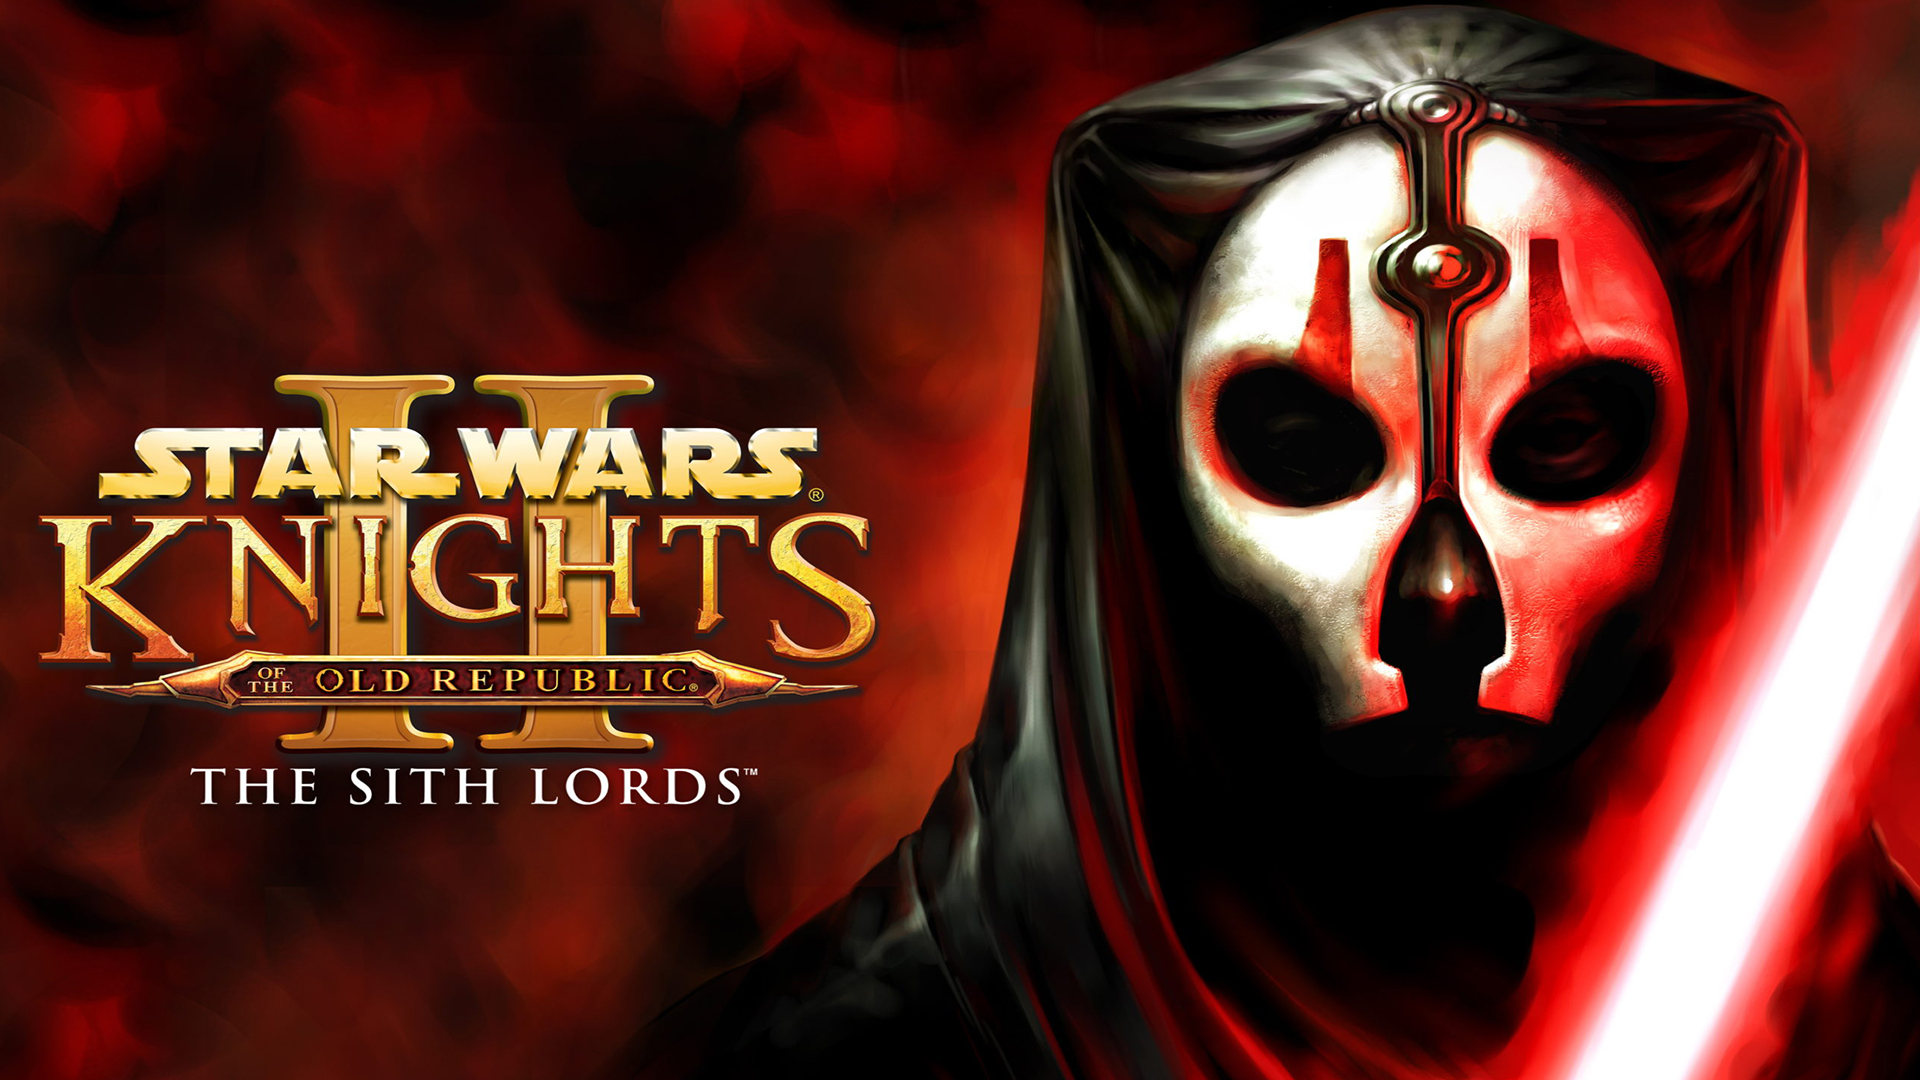 Star Wars: Knights of the Old Republic II – The Sith Lords releases for Chromebooks